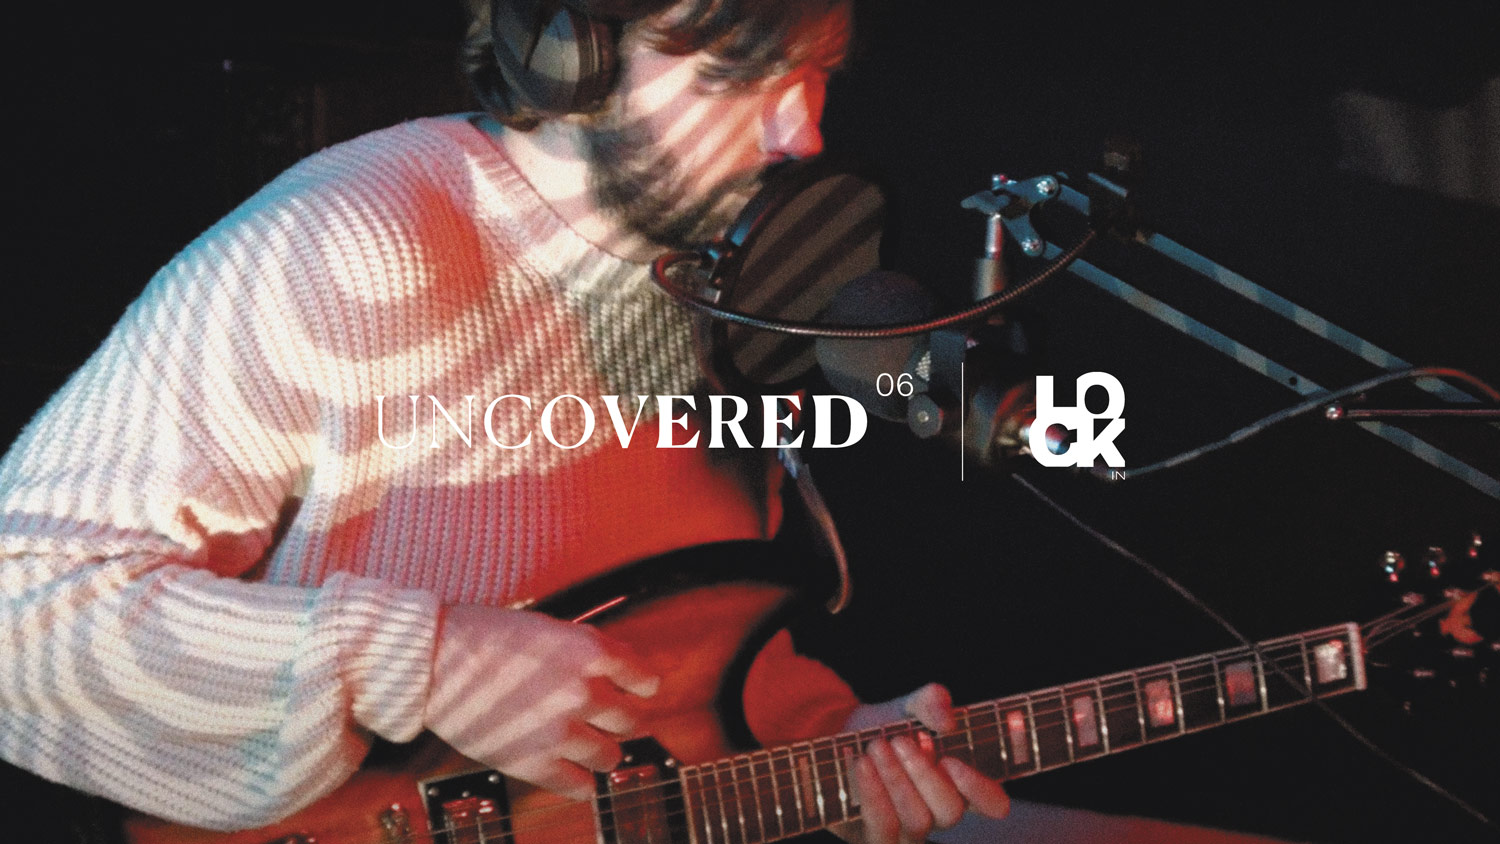 Uncovered: Gumshoe - Live Without Your Love